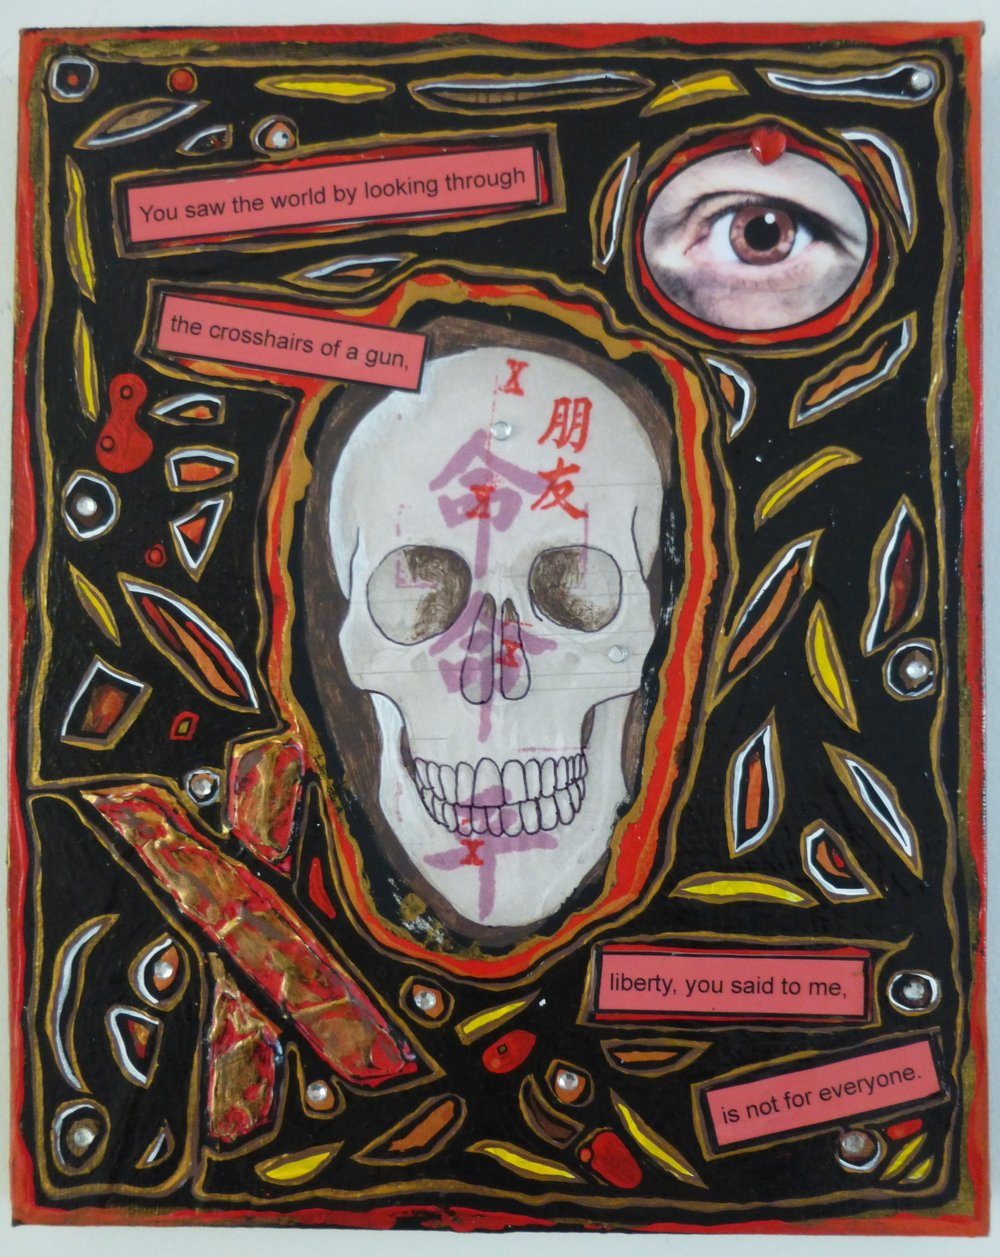 Mixed-media collage, acrylic on canvas, collage, text.  You saw the world by looking through  the crosshairs of a gun,  liberty, you said to me,  is not for everyone.